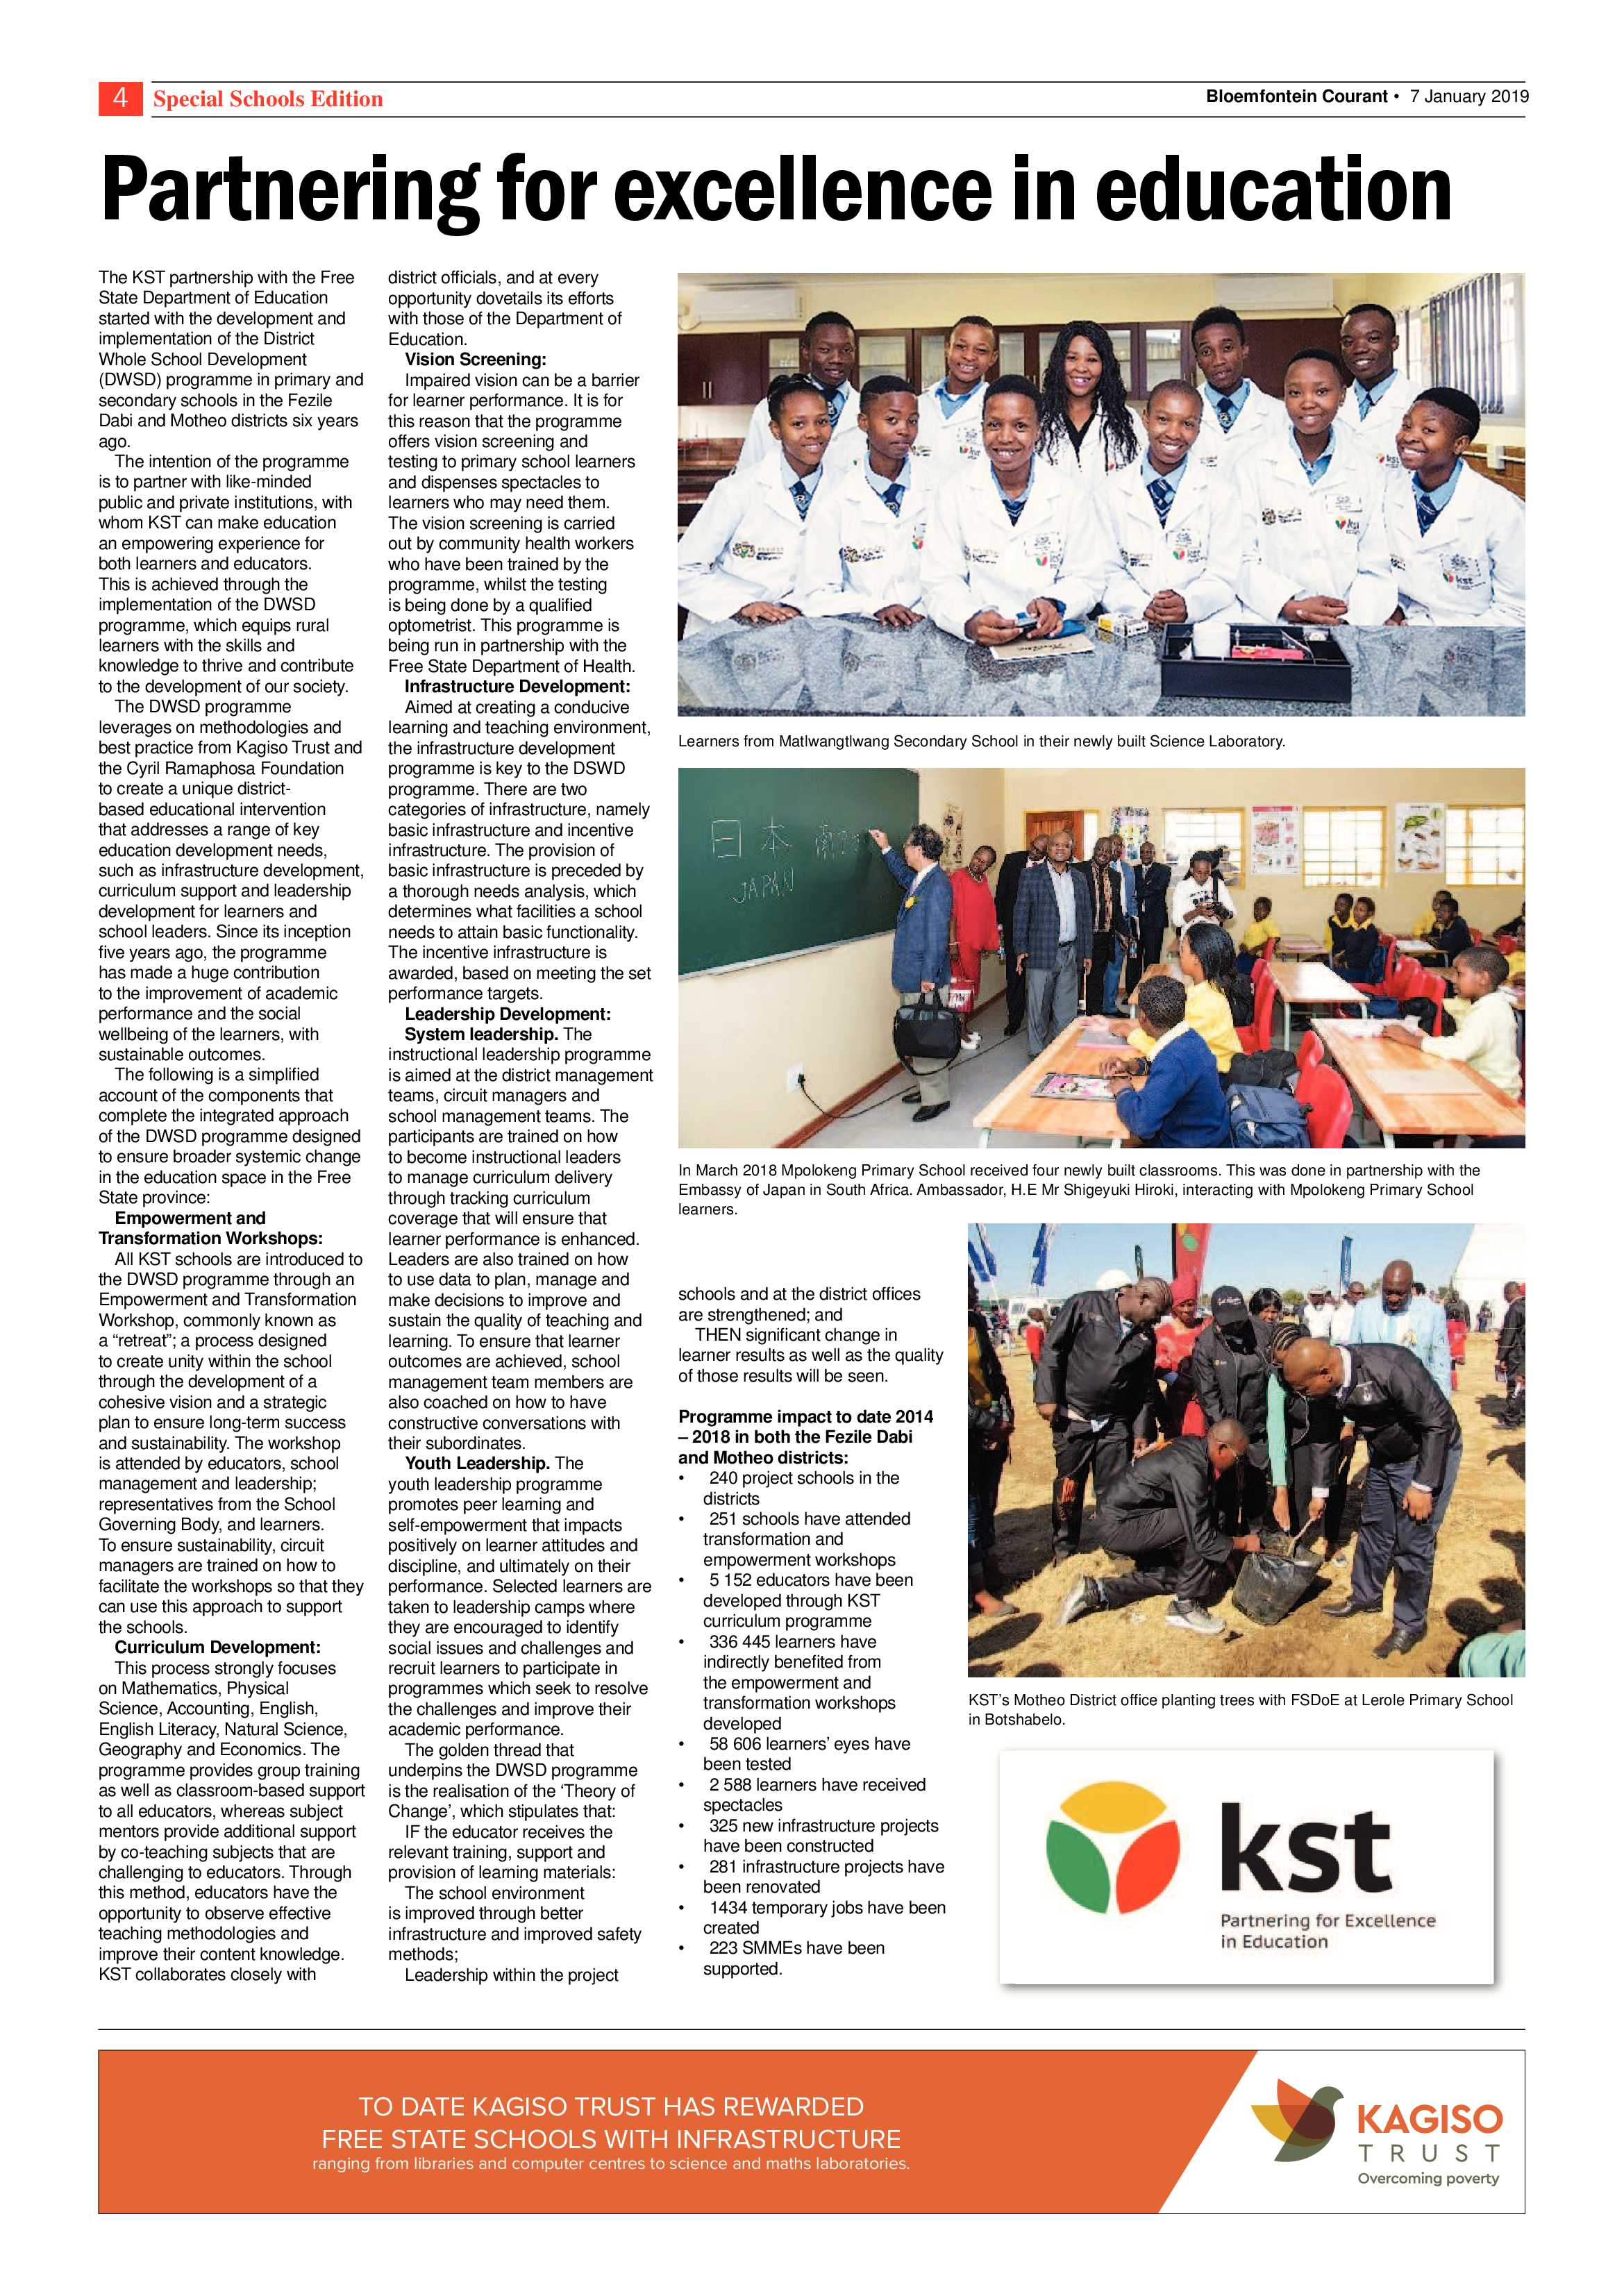 courant-school-edition-07-january-2019-epapers-page-4